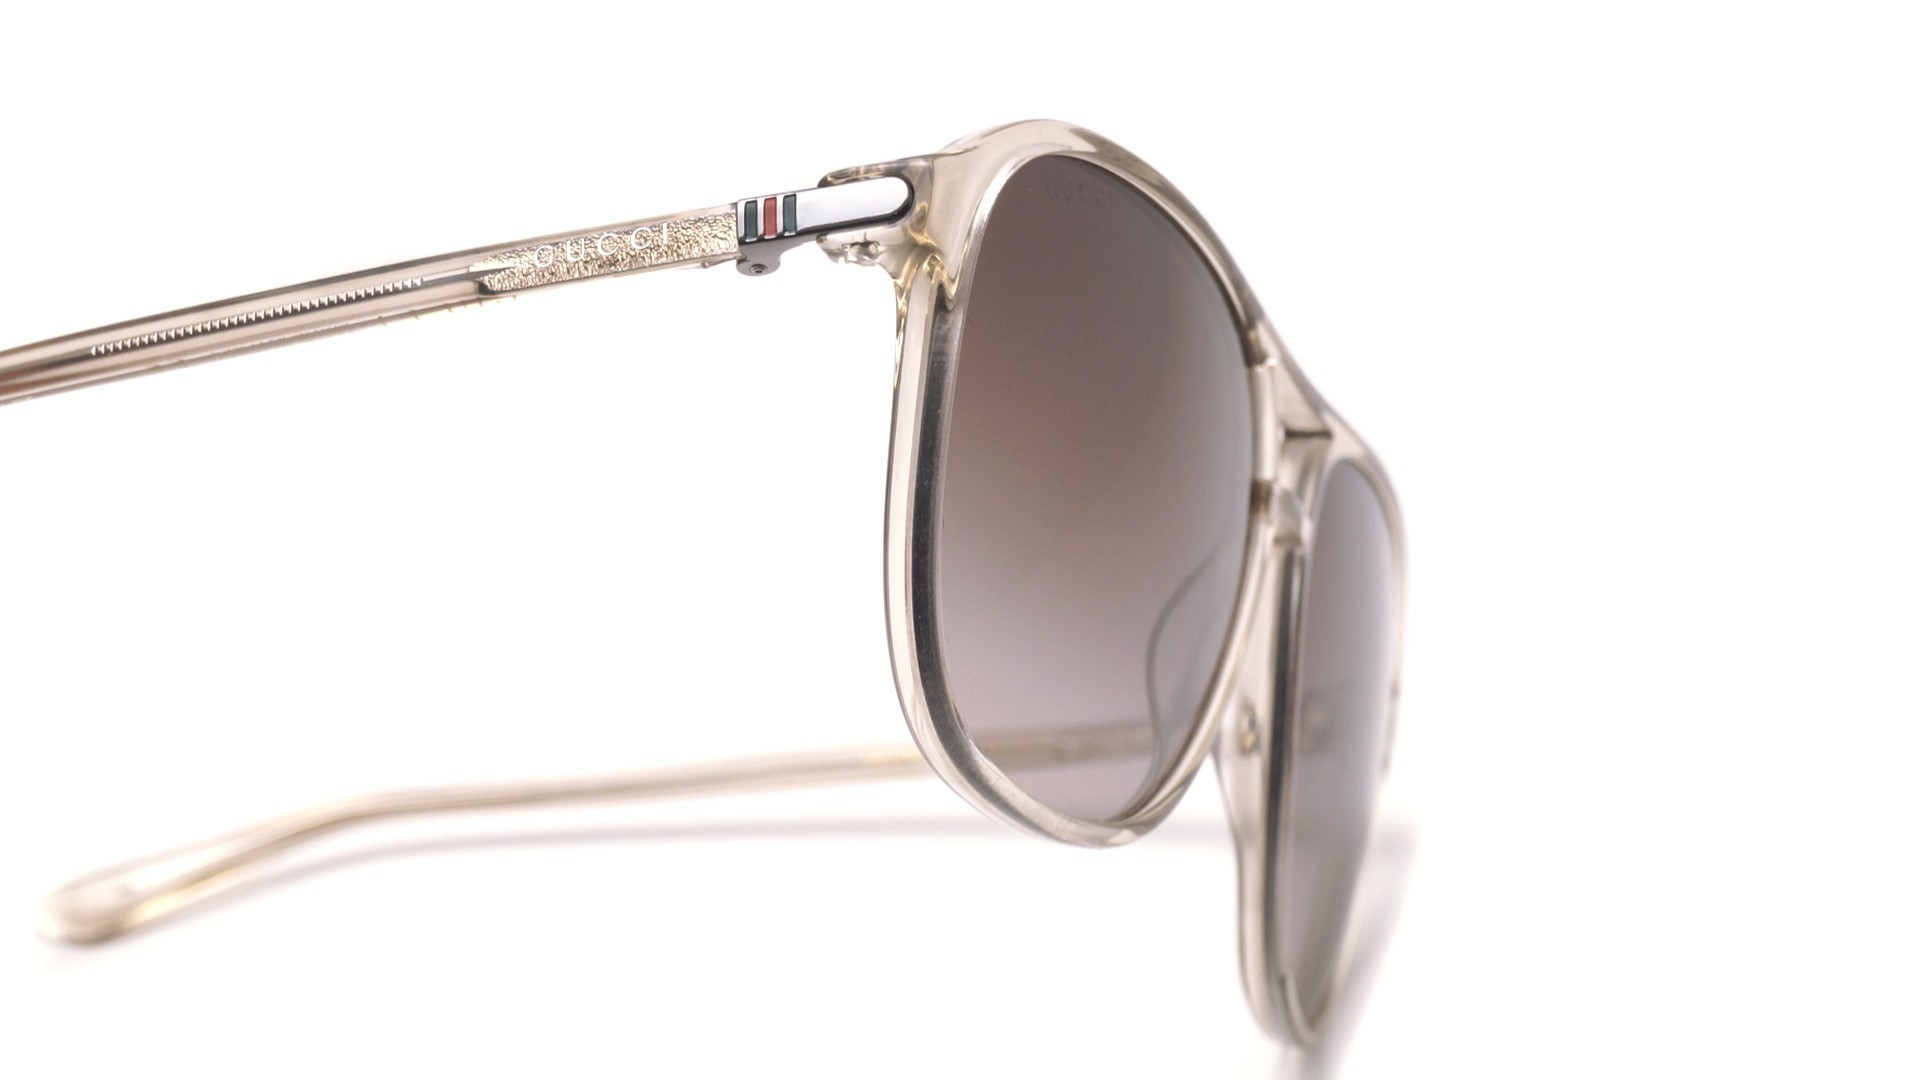 766c925aceb Sunglasses Gucci GG0016S 004 58-14 Clear Large Gradient